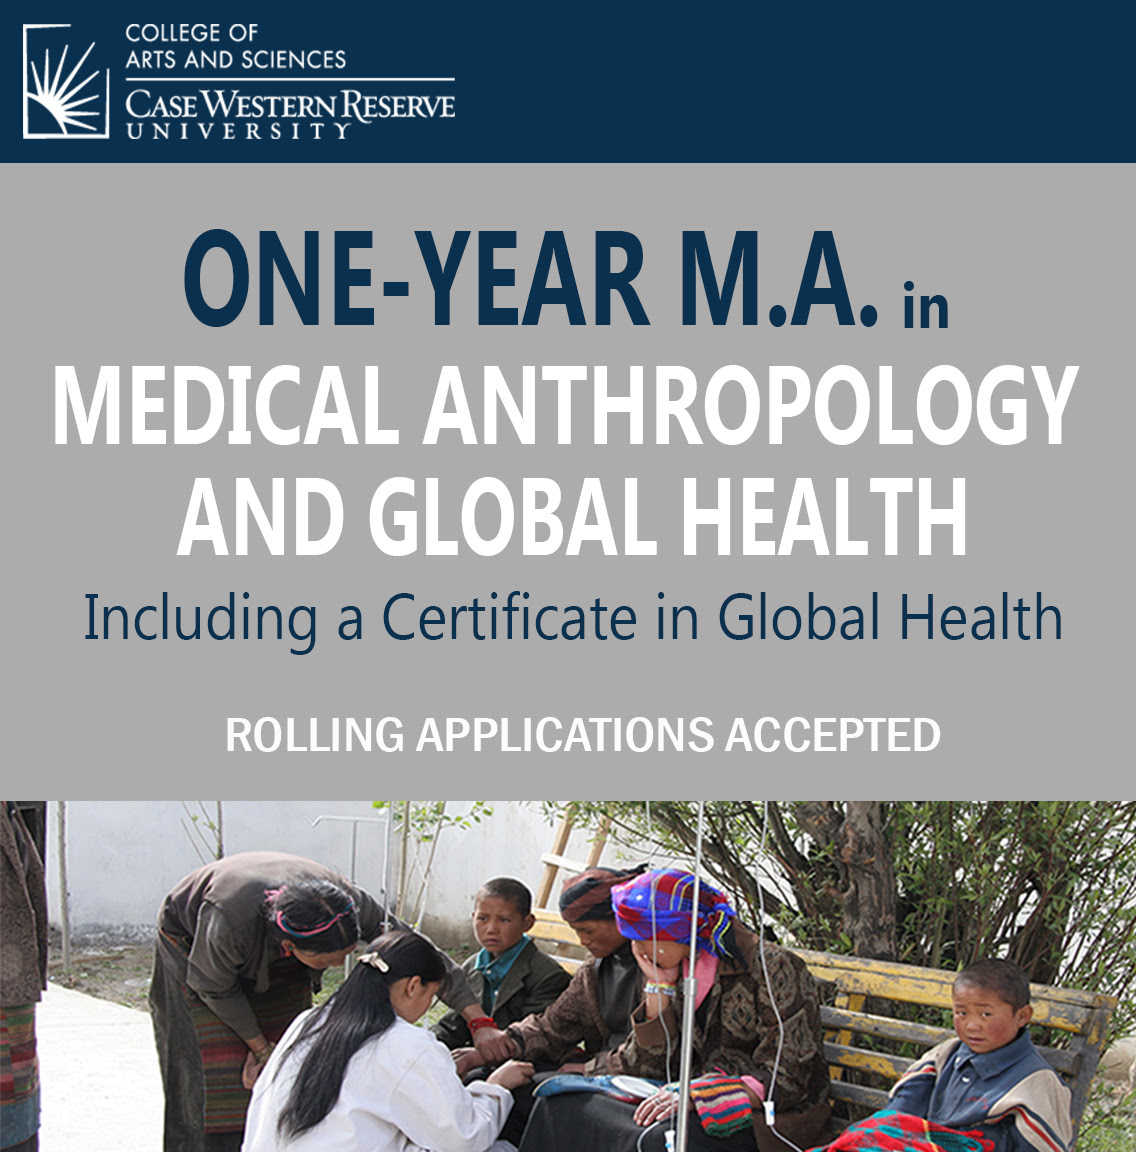 Exciting New 1 Yr Ma In Medical Anthropology And Global Health